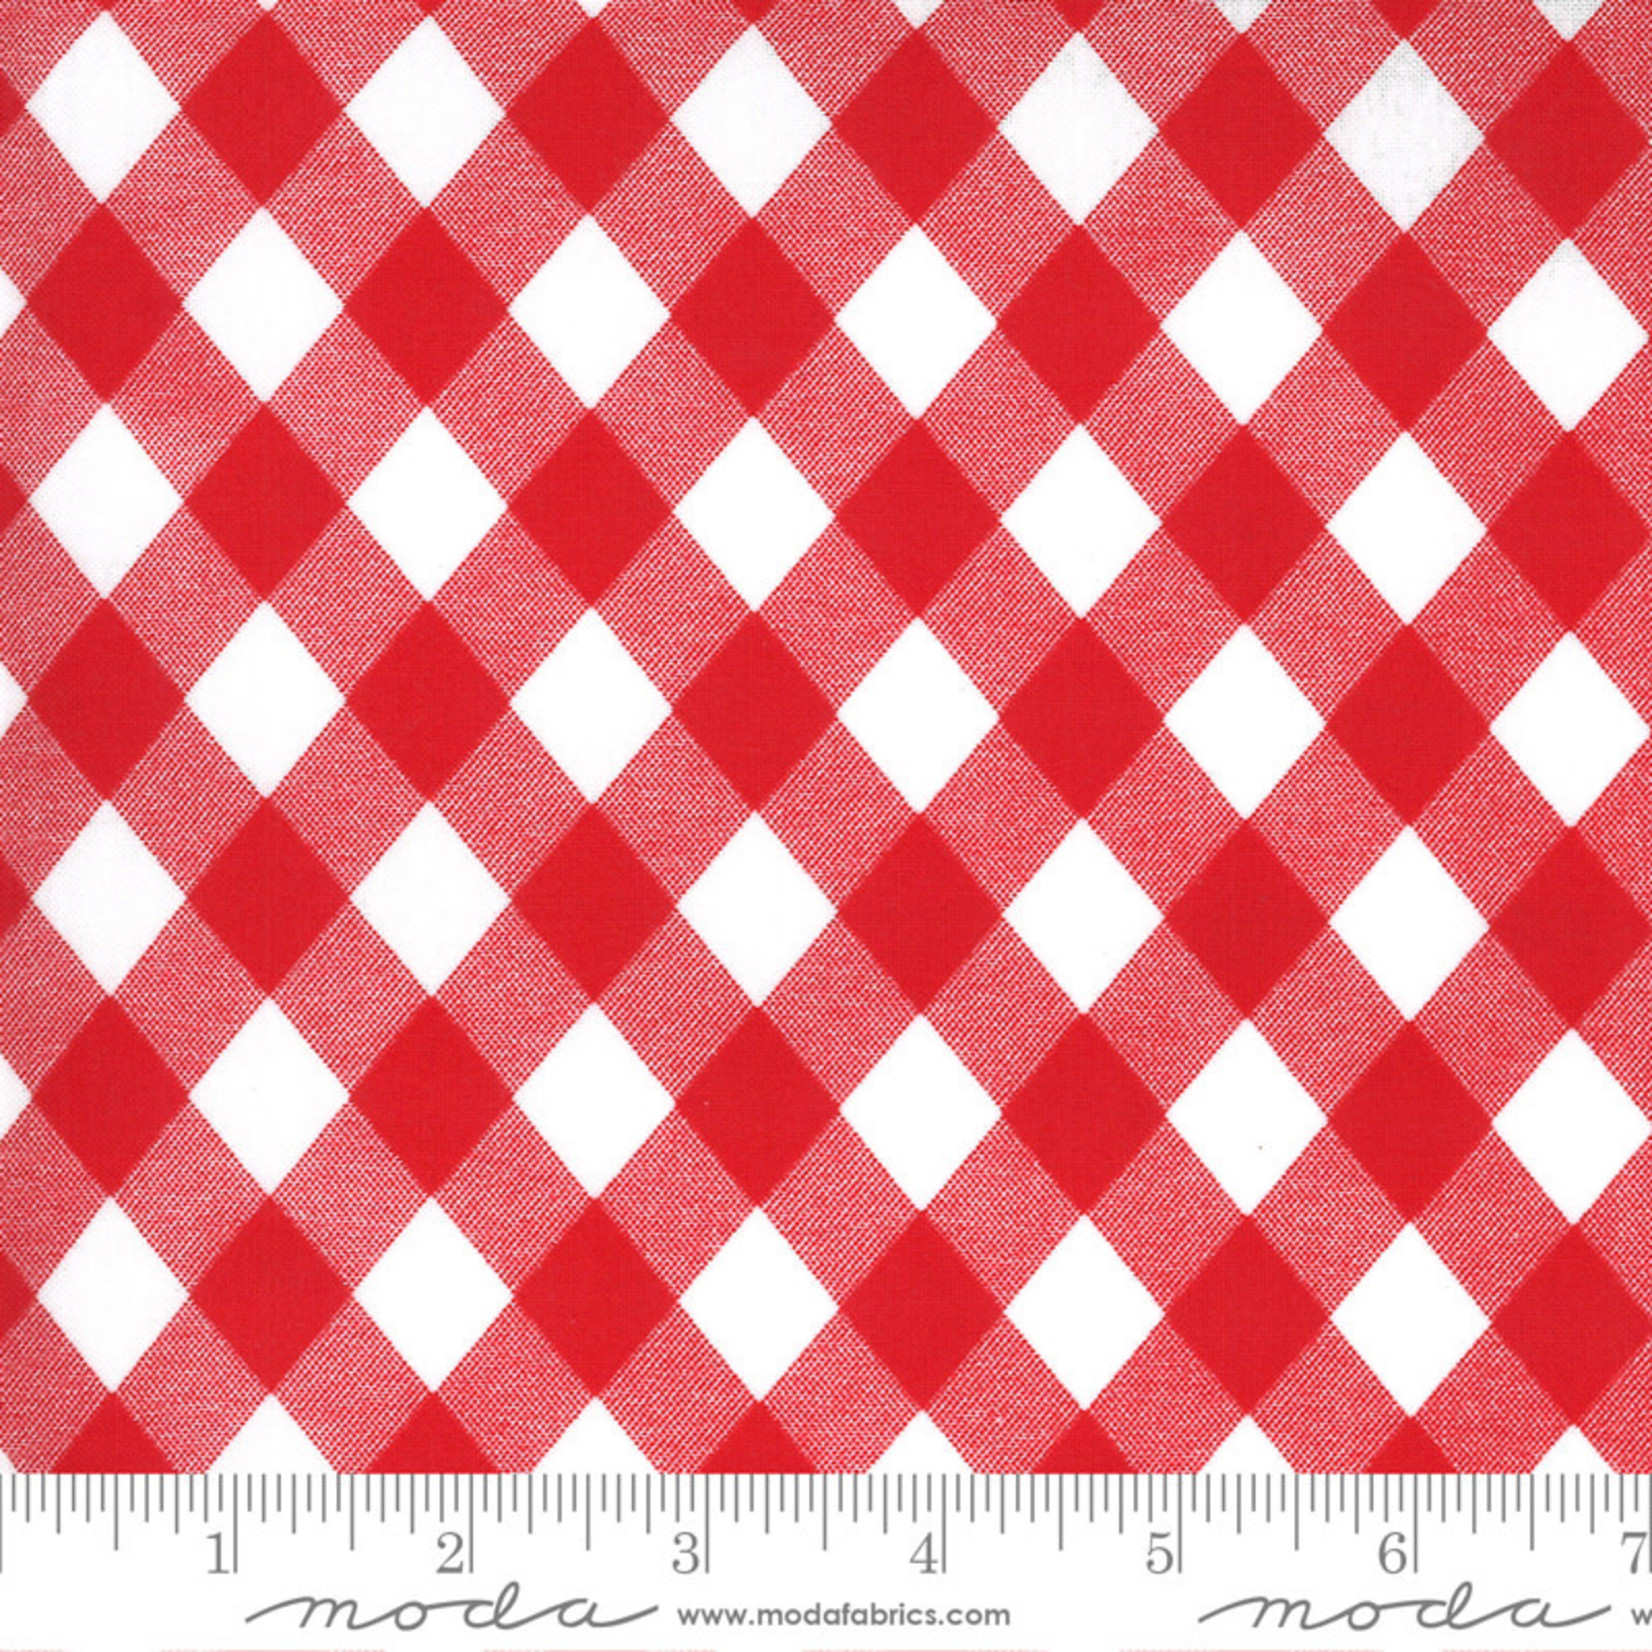 Bonnie & Camille Sunday Stroll, Picnic Gingham, White Red 55227 12 $0.20 per cm or $20/m